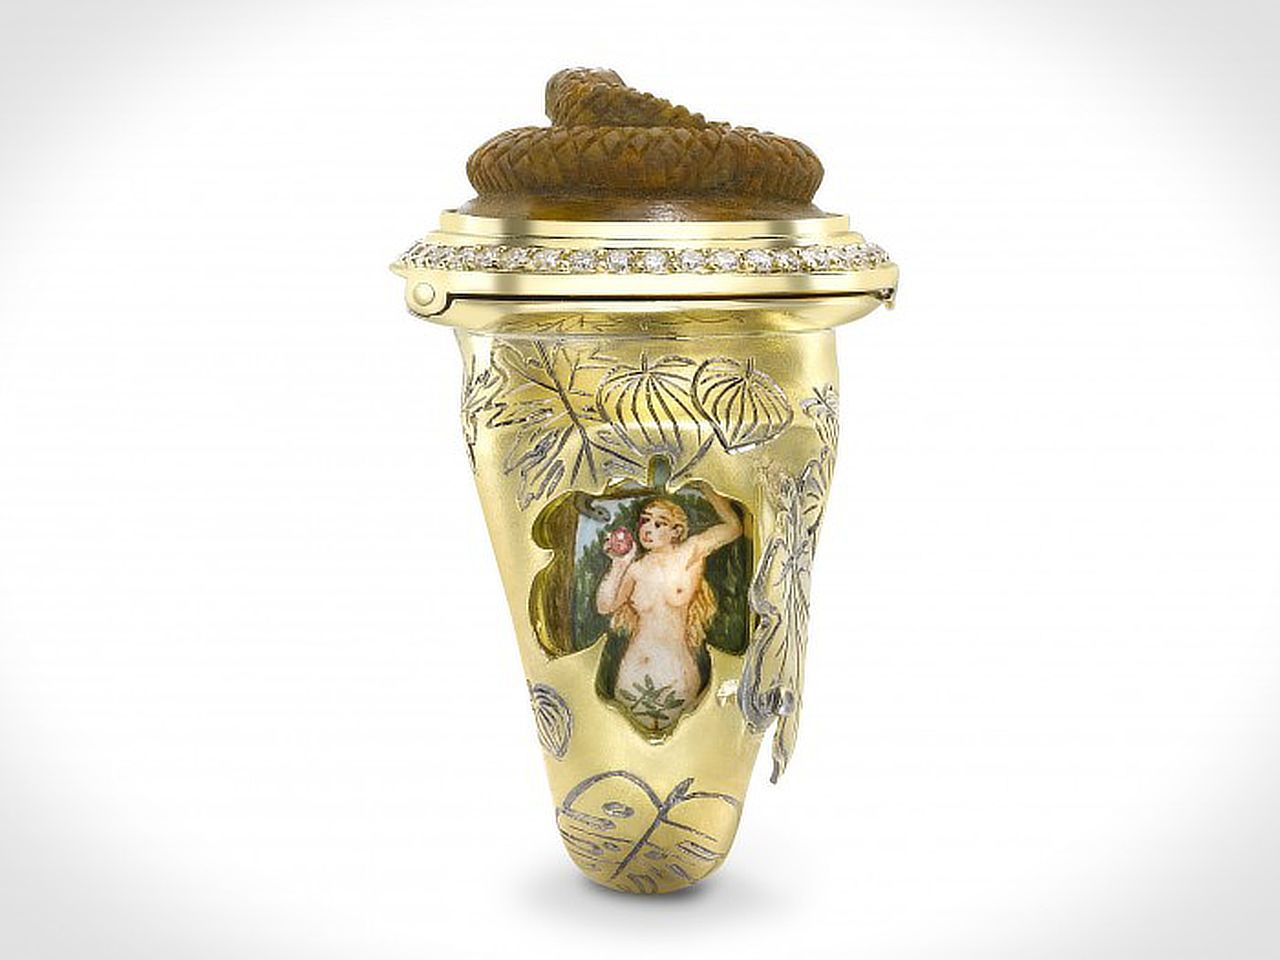 apple-of-temptation-adam-and-eve-ring-004